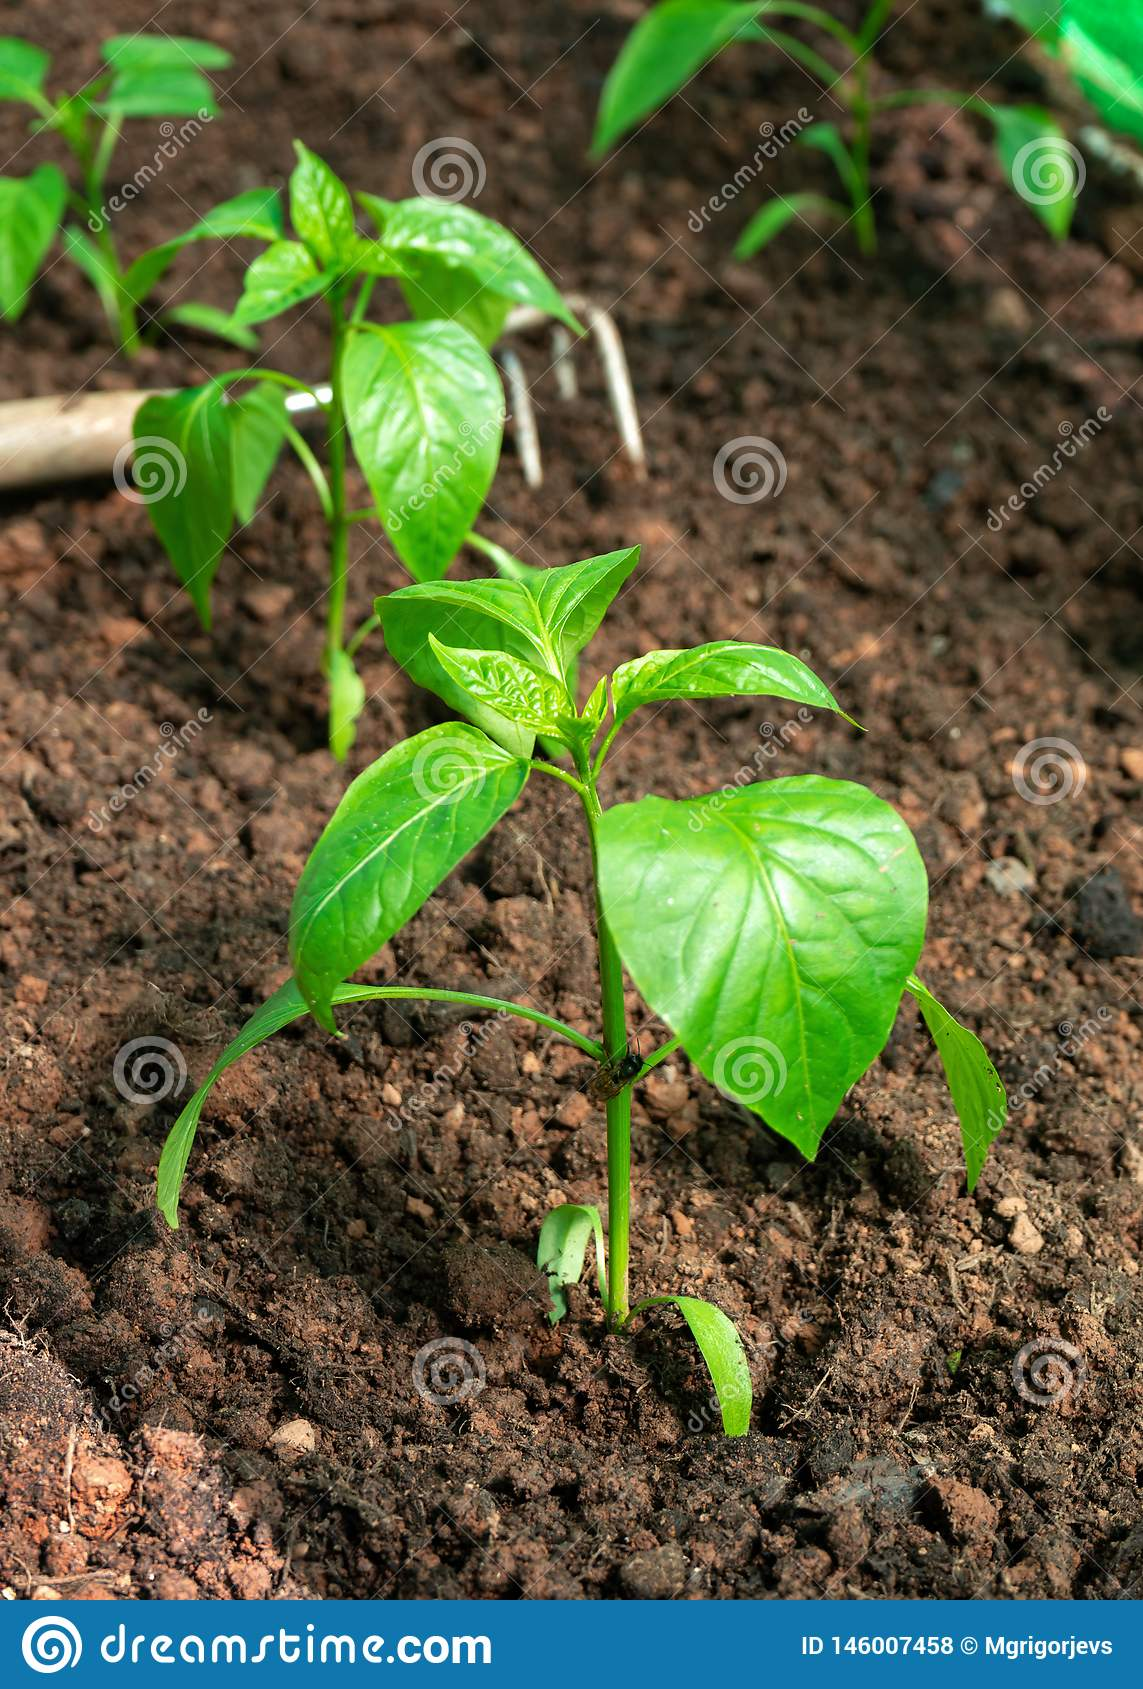 Sweet bell Pepper seedlings, young plants on a vegetable garden bed